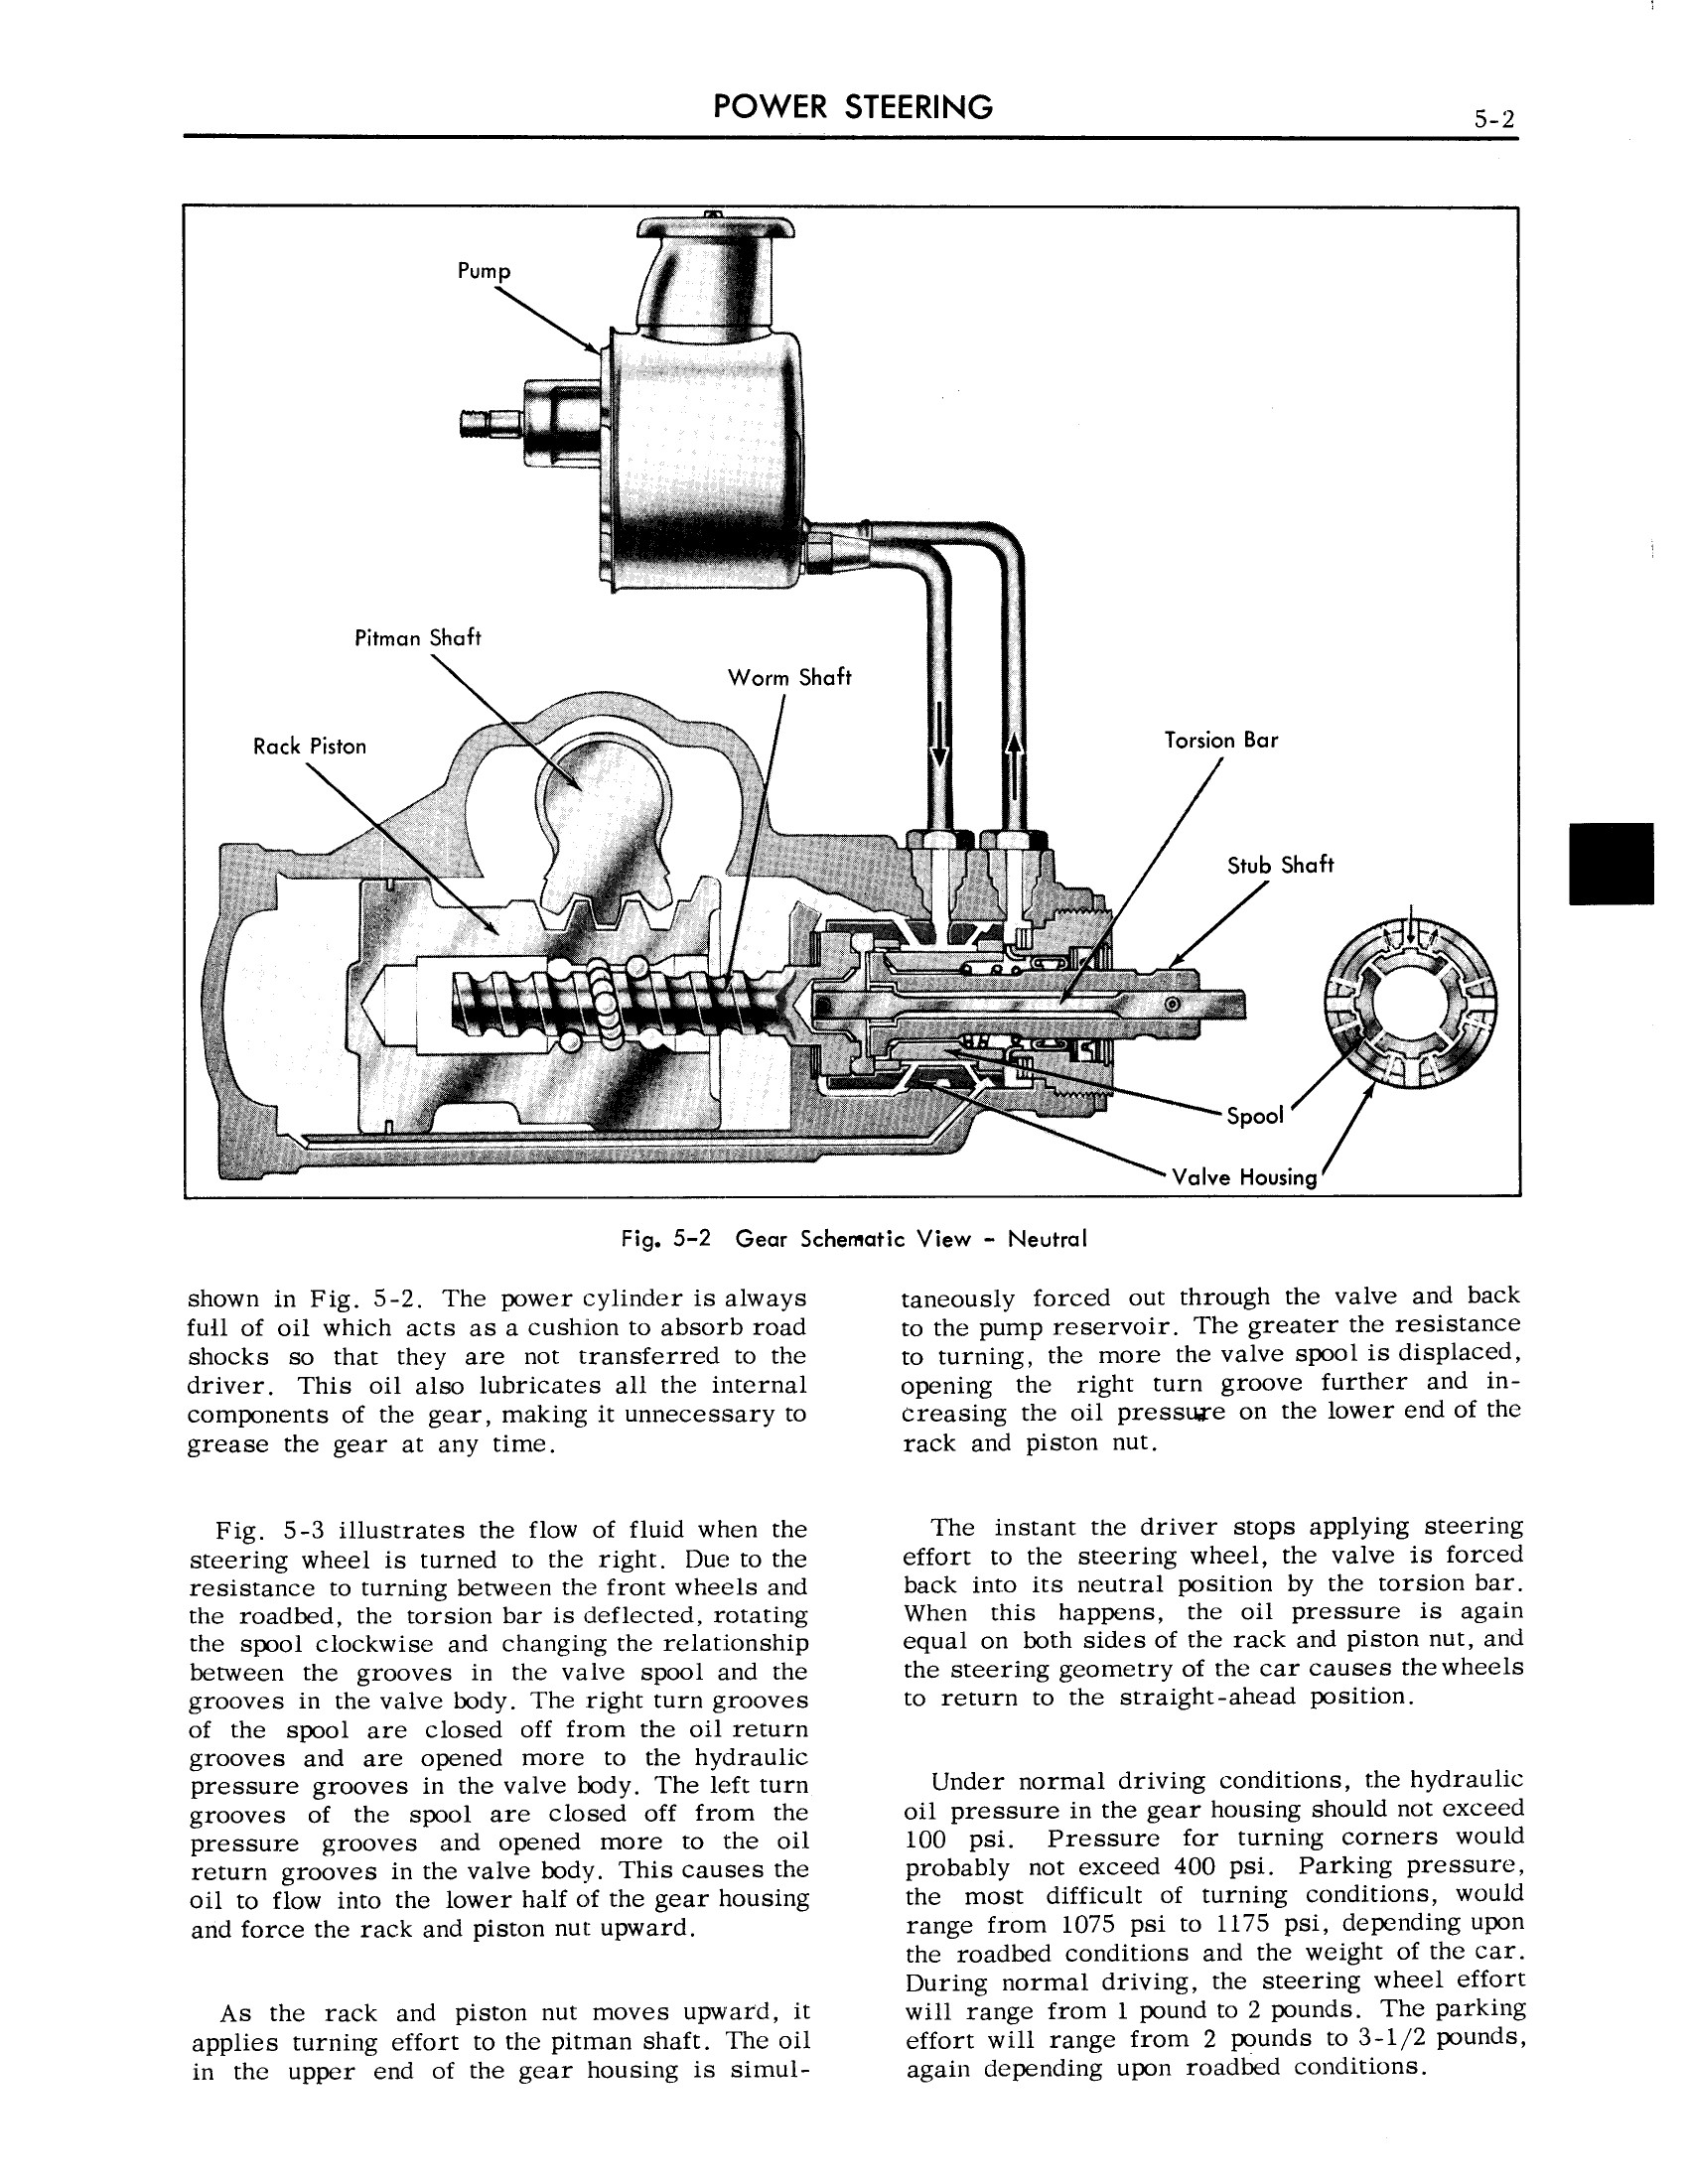 1959 Cadillac Shop Manual- Power Steering Page 2 of 31